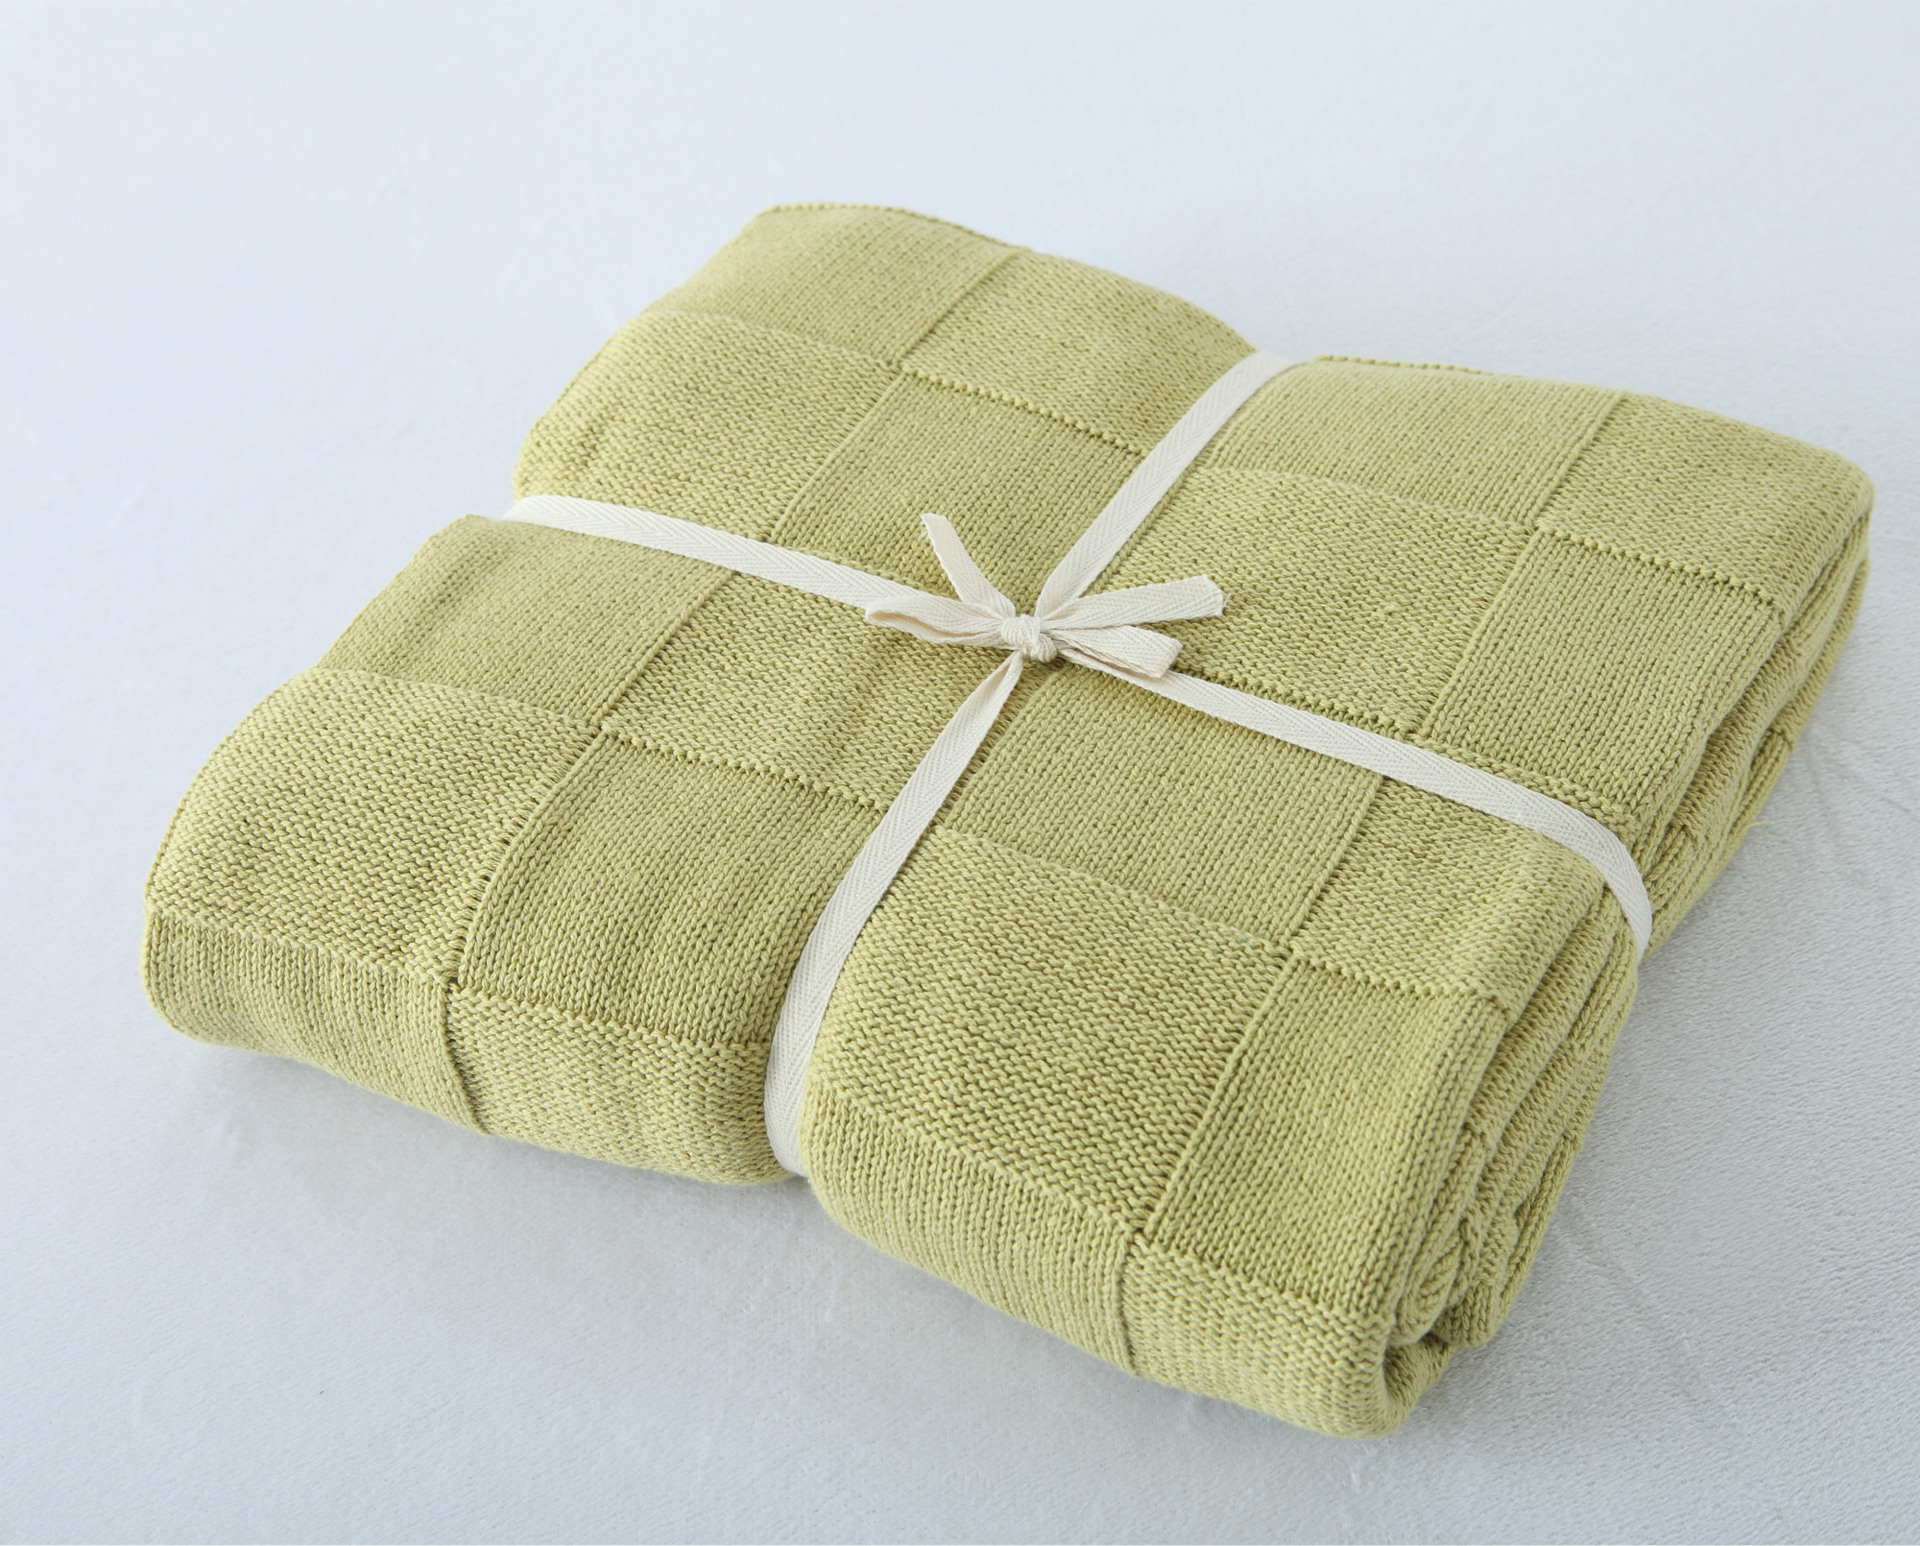 Fabulous Aliexpress.com : Buy Plaid Knitted Blanket Bed Bankets 100% Cotton  SN83